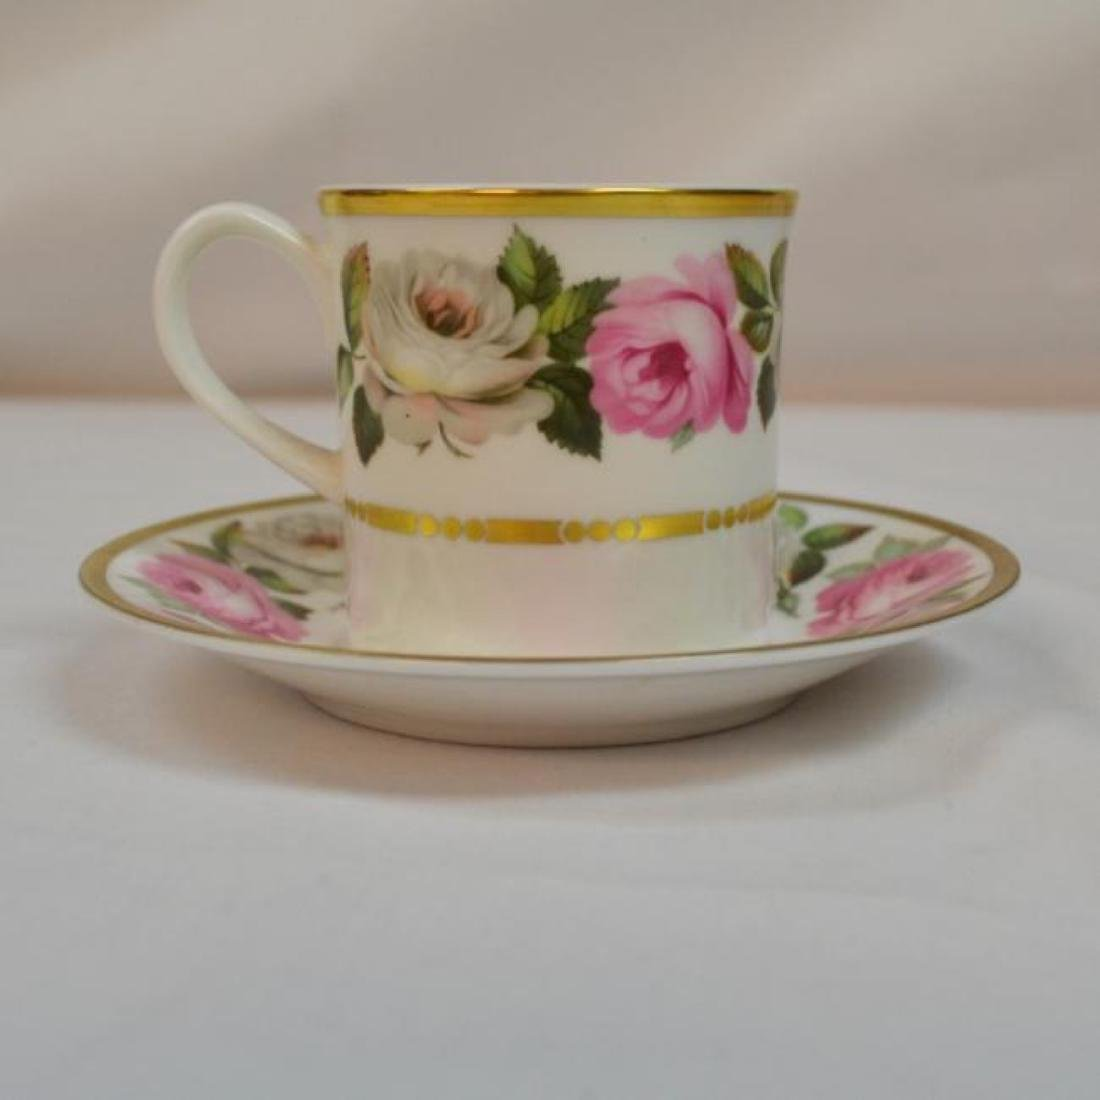 Royal Worcester Antique Bone China Coffee Cup - 3